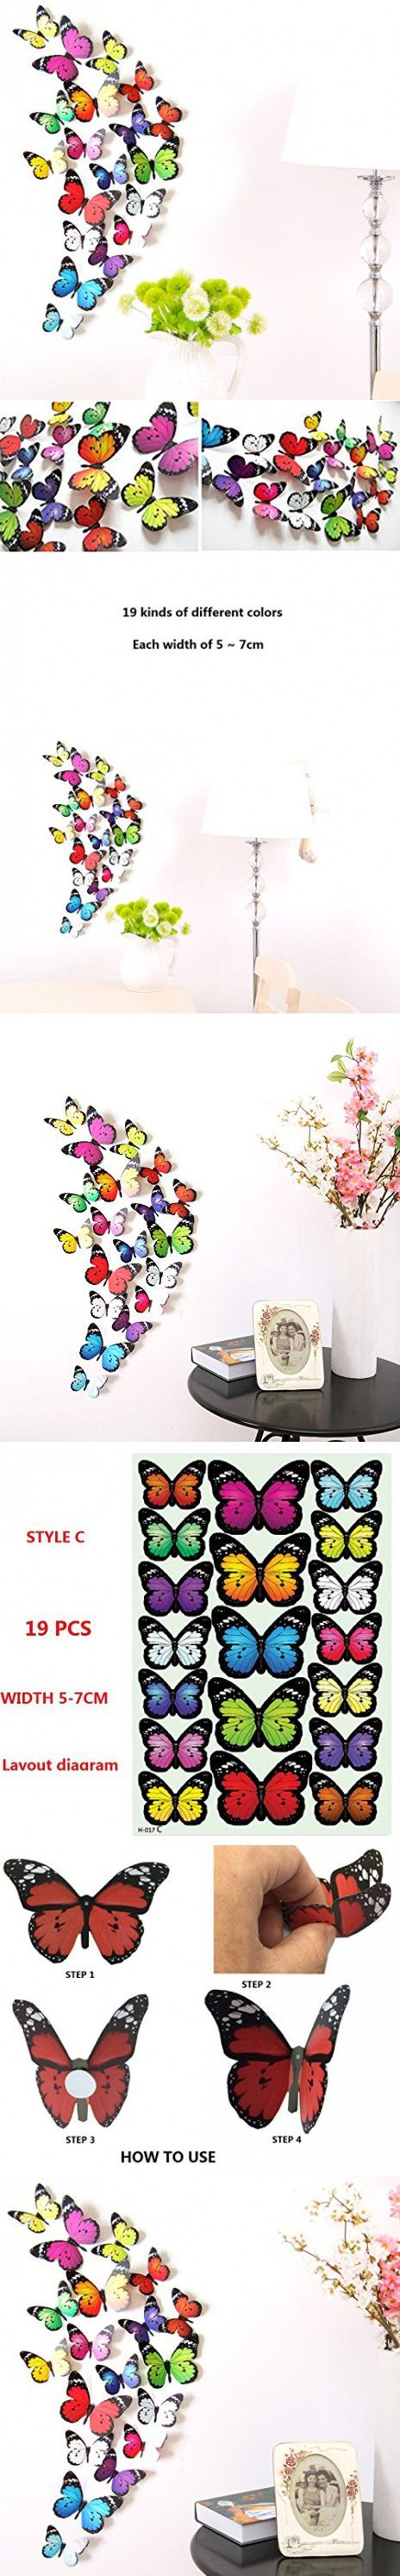 best 25 butterfly wall stickers ideas on pinterest butterfly amaonmA 19 pcs removable diy pvc 3d colorful butterfly wall sticker murals butterflies wall decals wall decorations art decor decal for nursery room